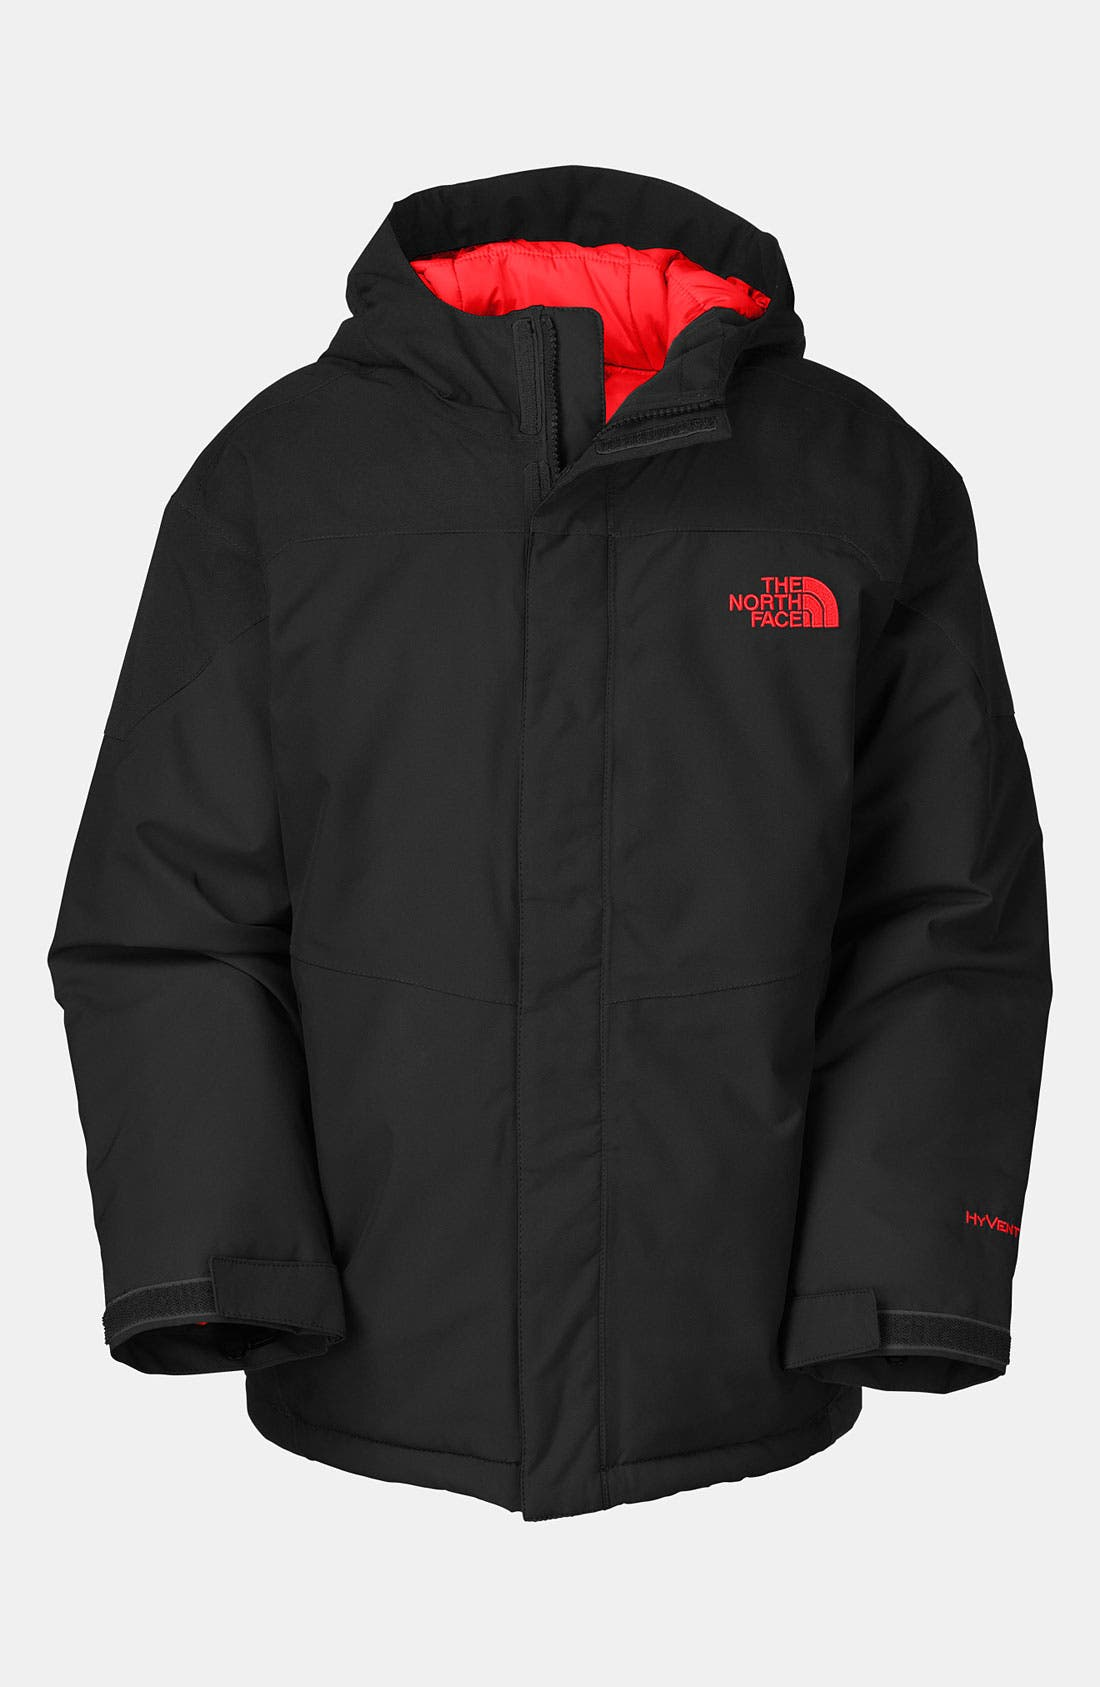 Alternate Image 1 Selected - The North Face 'Durant' Insulated Jacket (Little Boys)